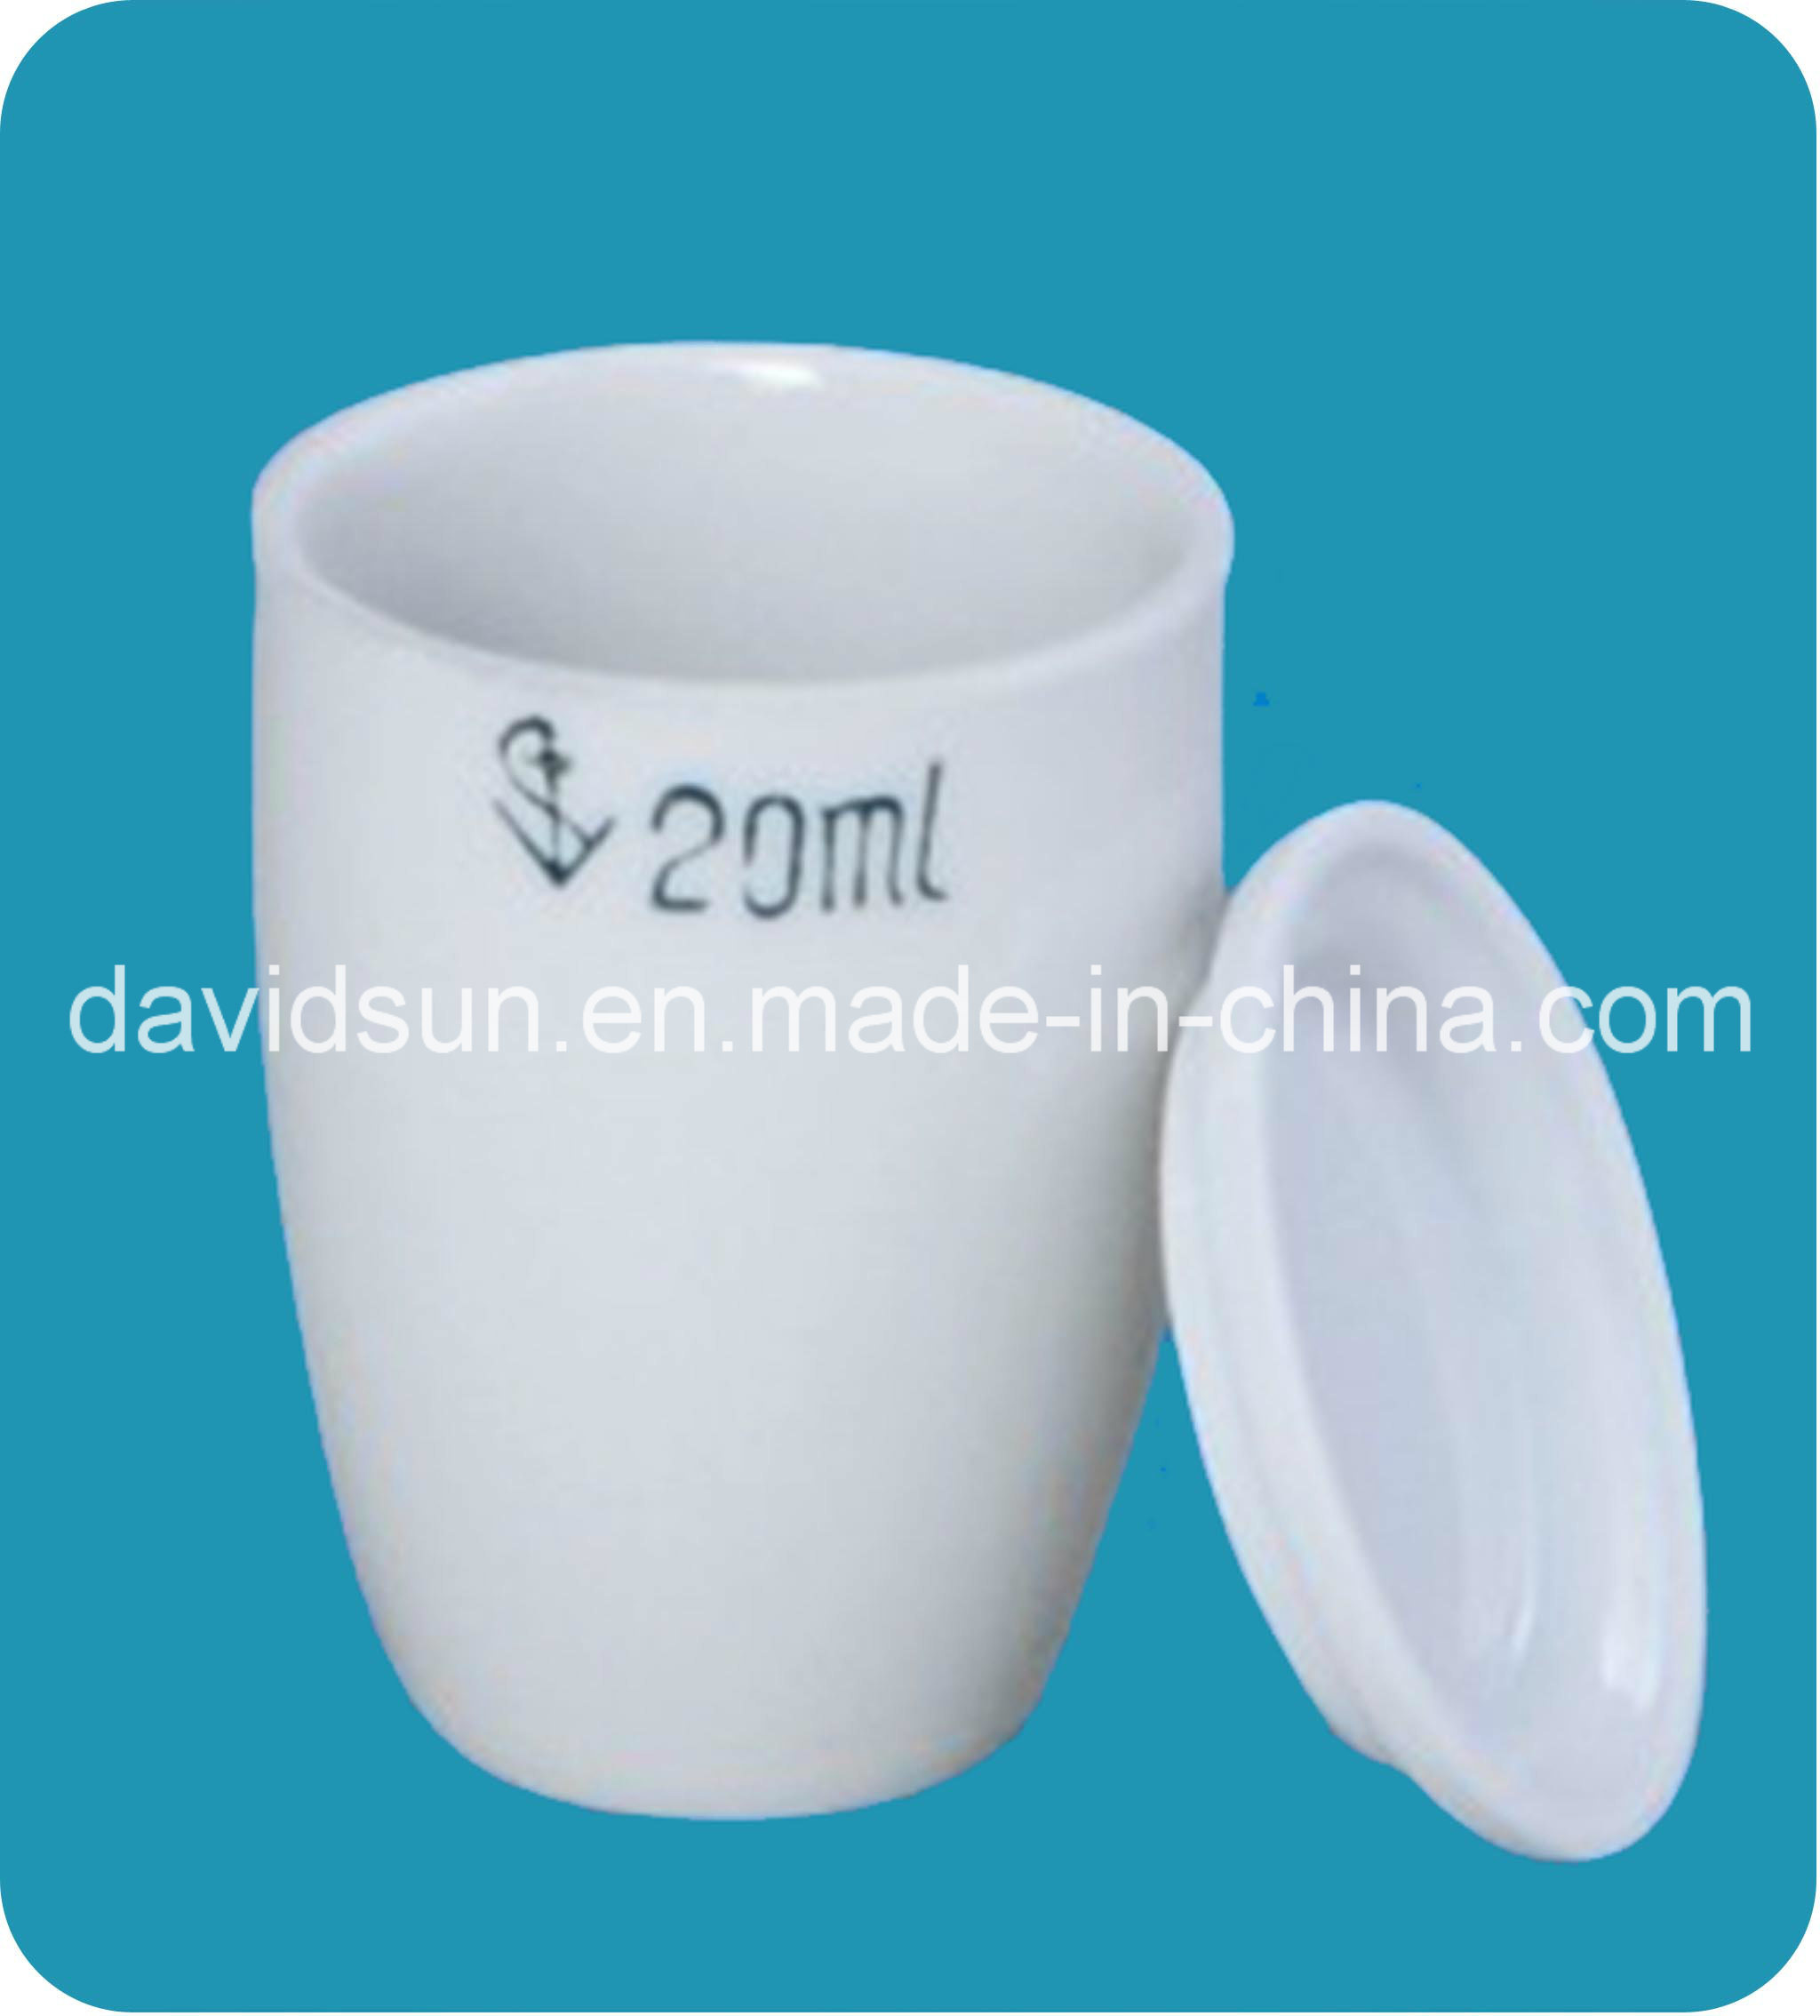 Laboratory Porcelainware Crucibles with Tight Closing Lid Glazed